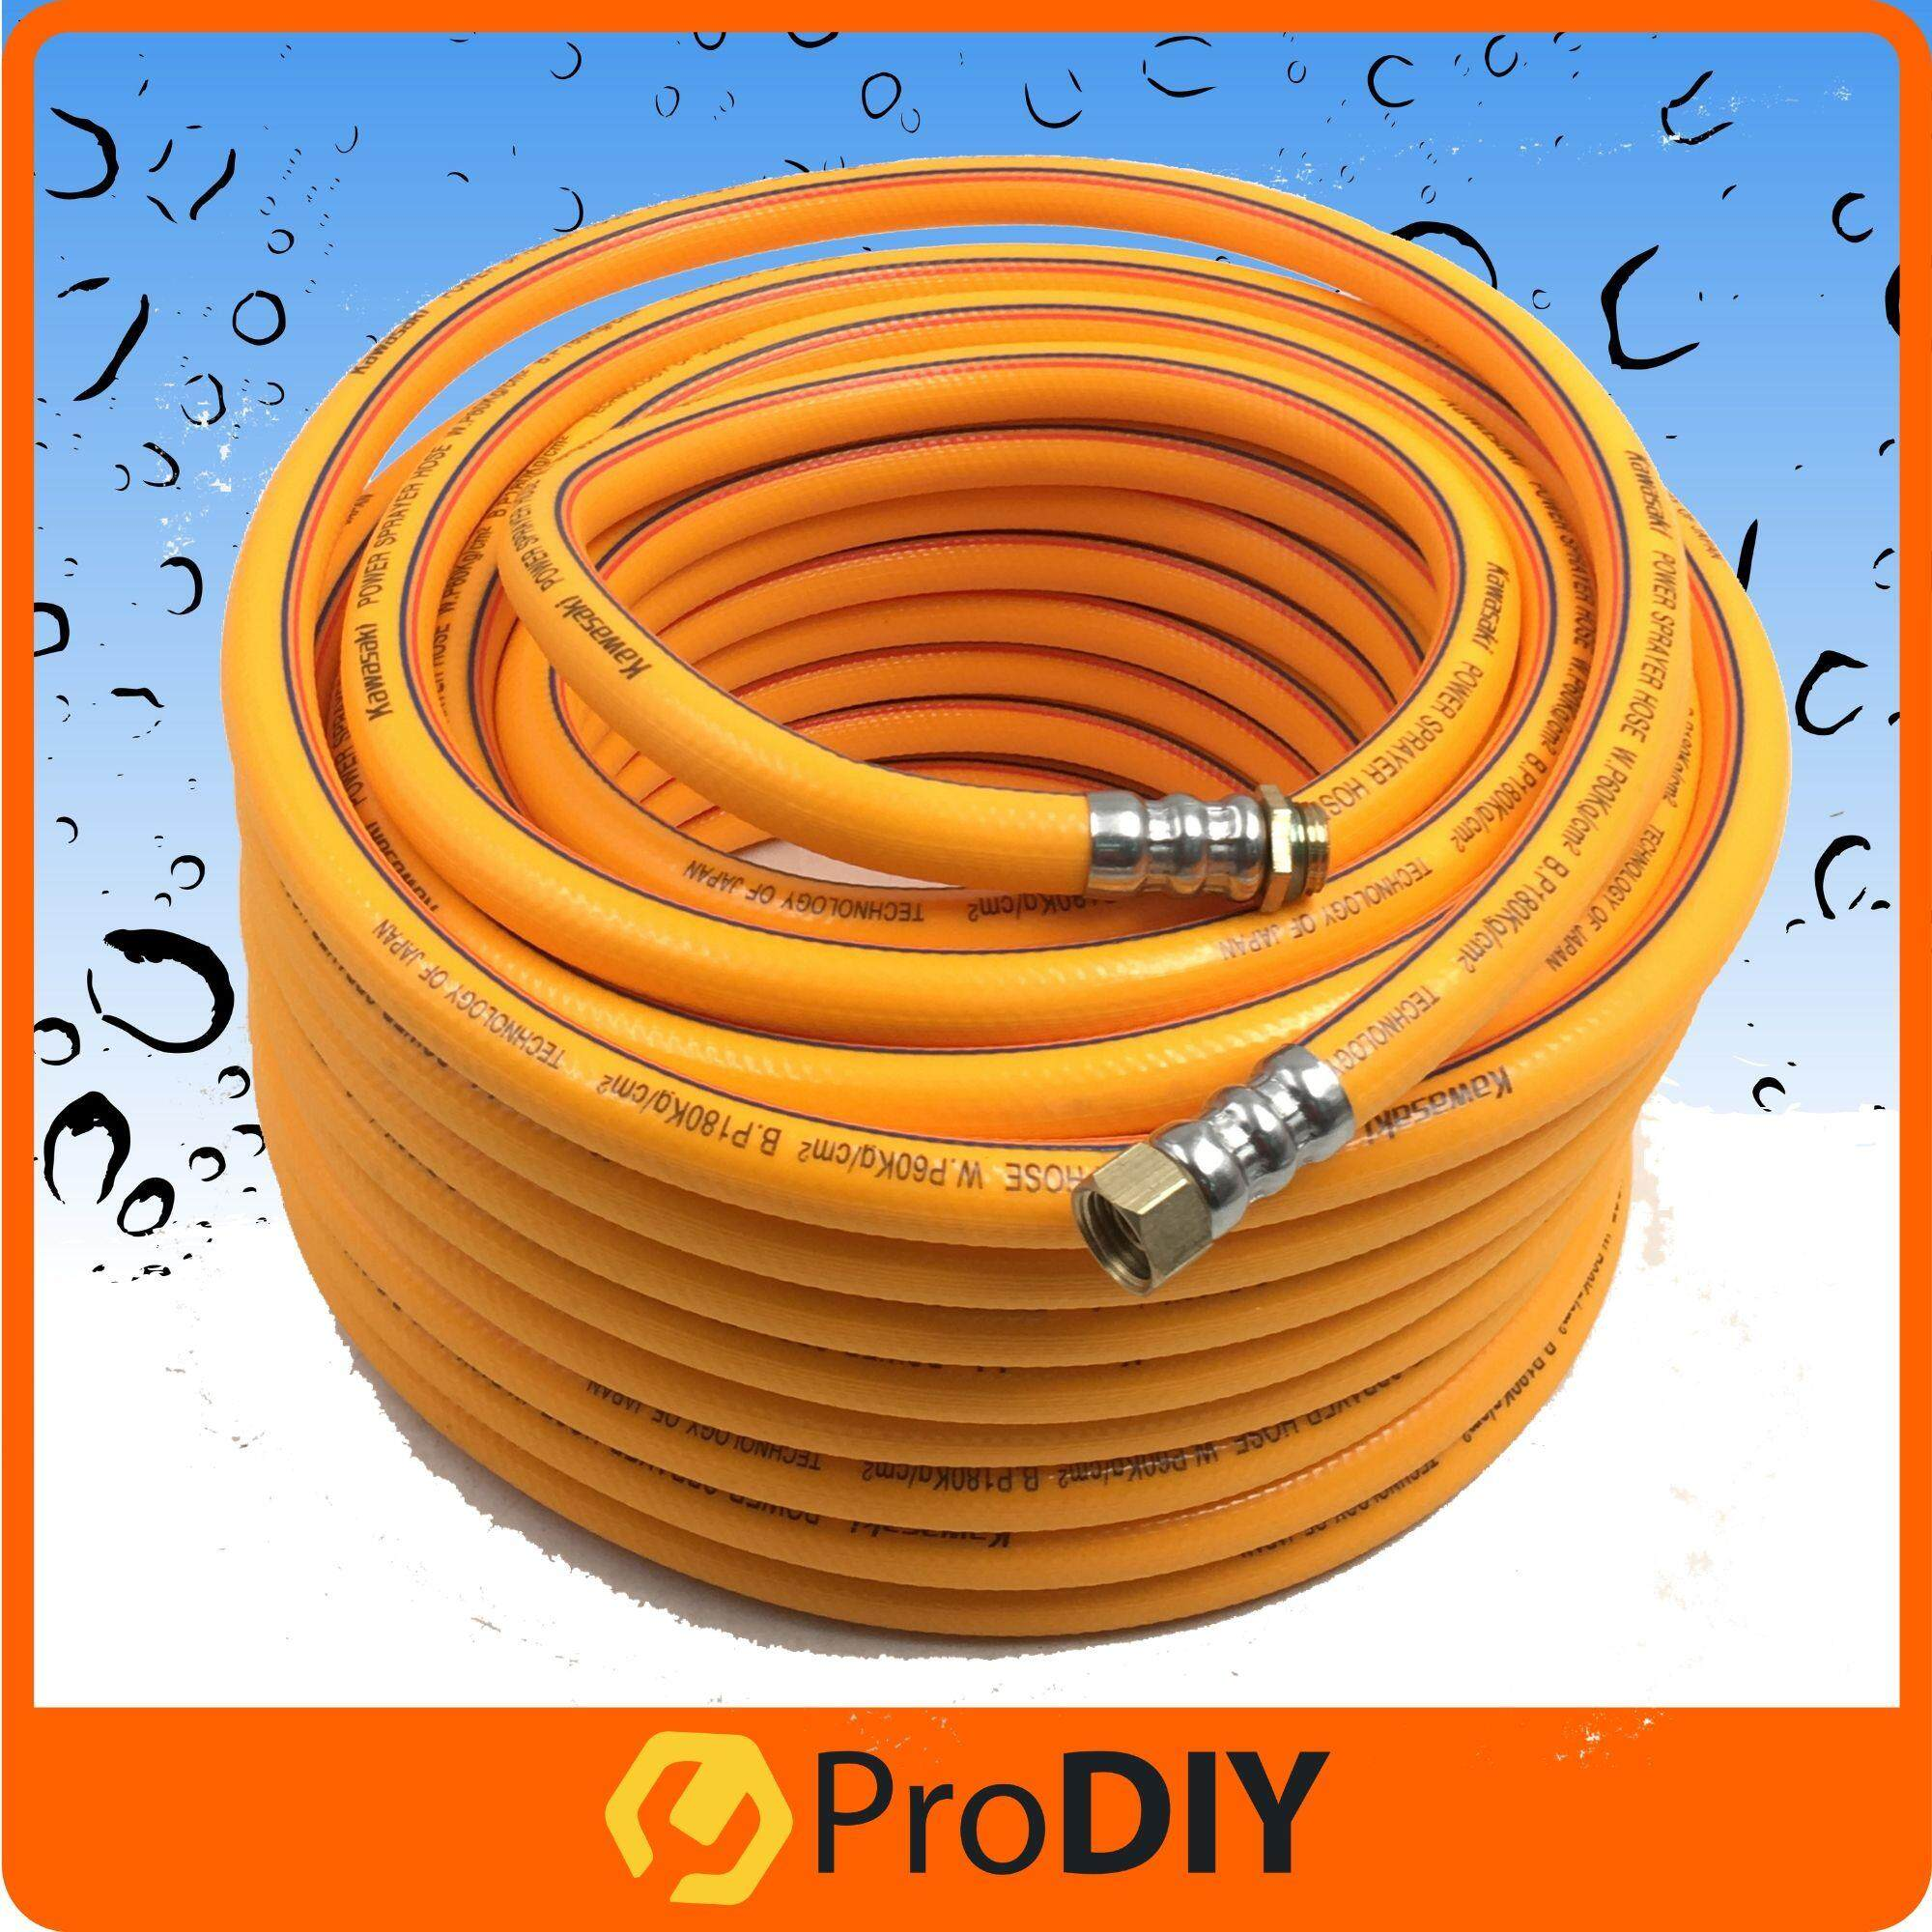 KAWASAKI 8.5MM X 20M High Pressure Water Cleaning Hose